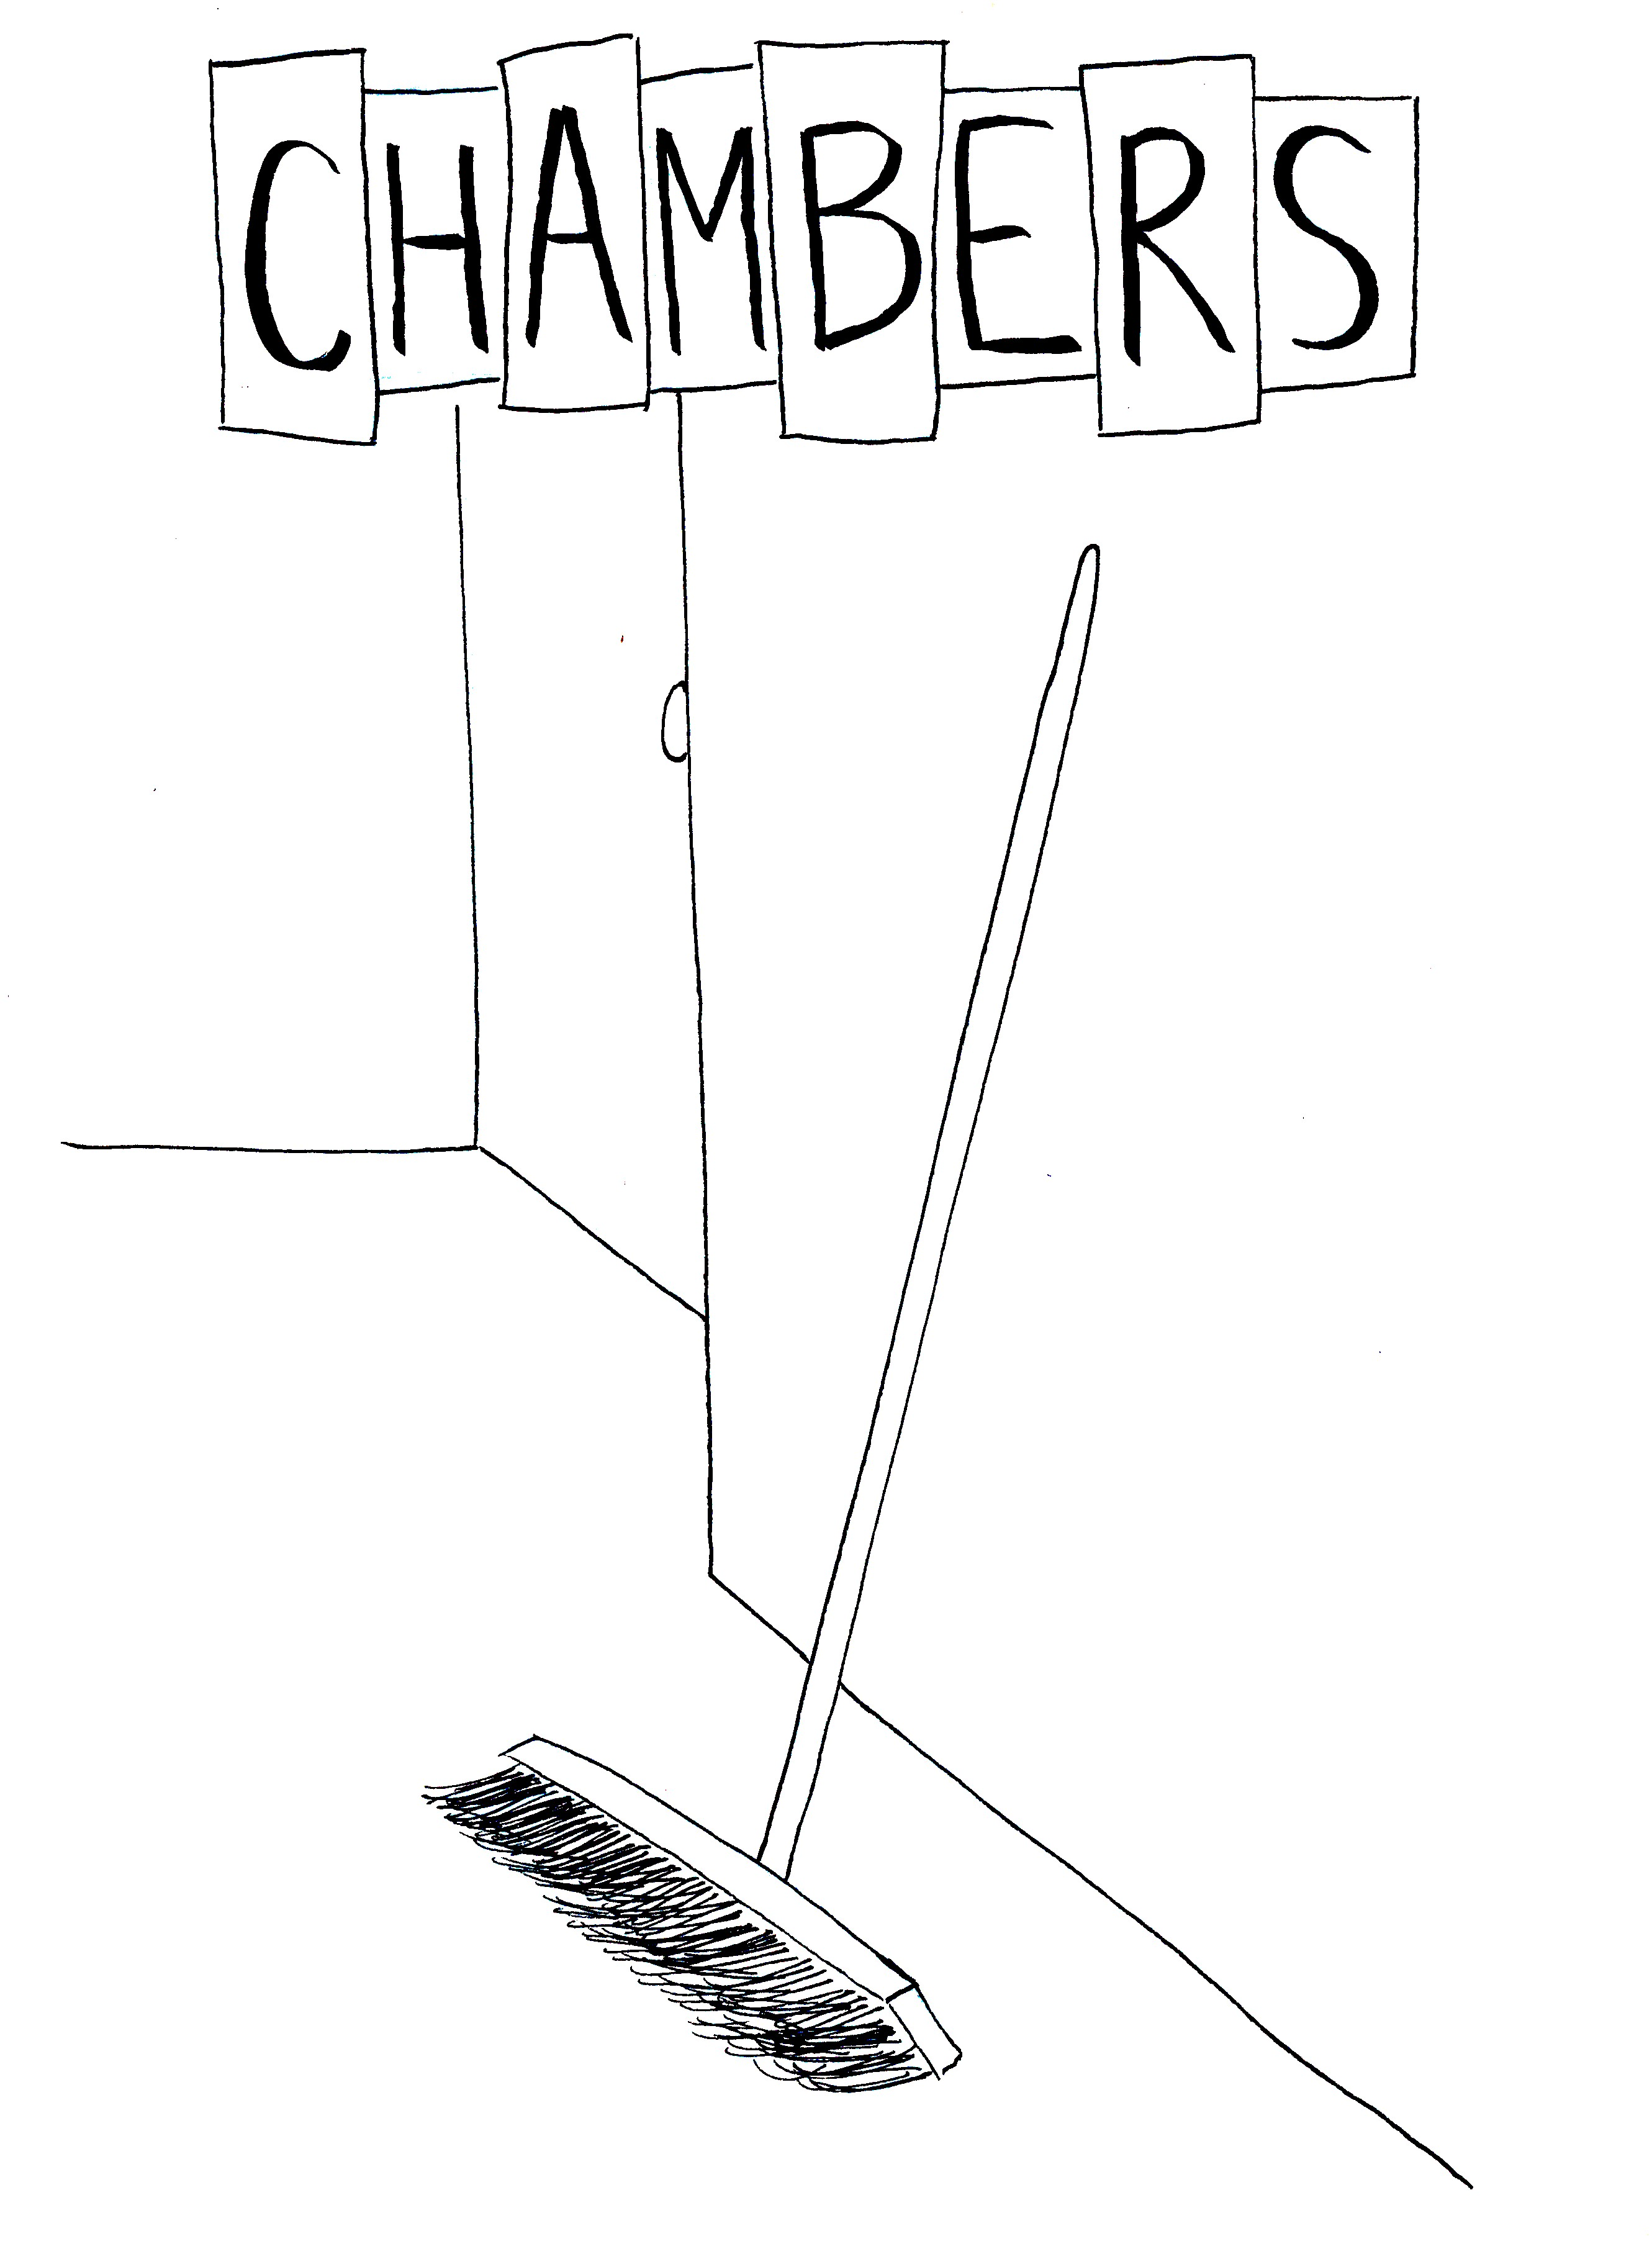 If you are allergic to looking at brooms, this might not be the comic for you.